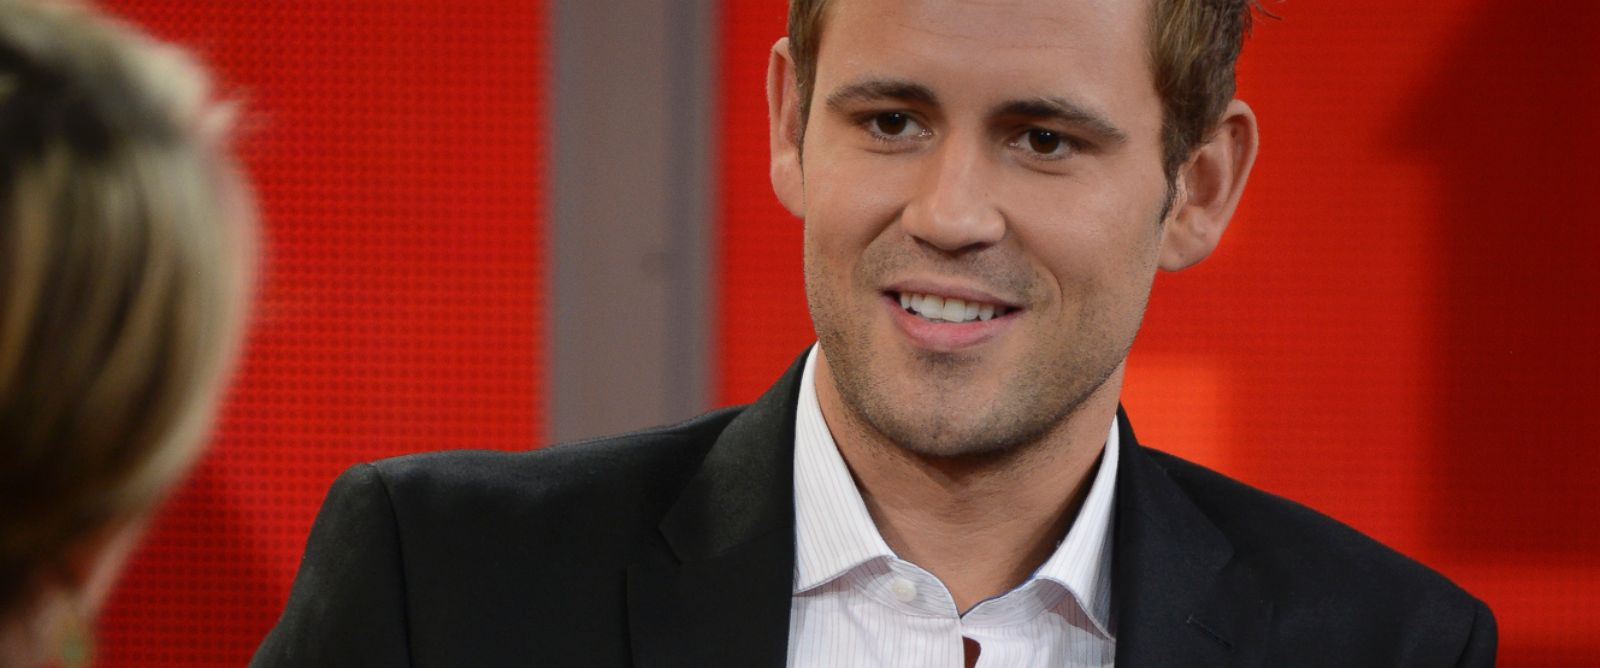 PHOTO: Nick Viall of The Bachelorette on Good Morning America, July 31, 2014.